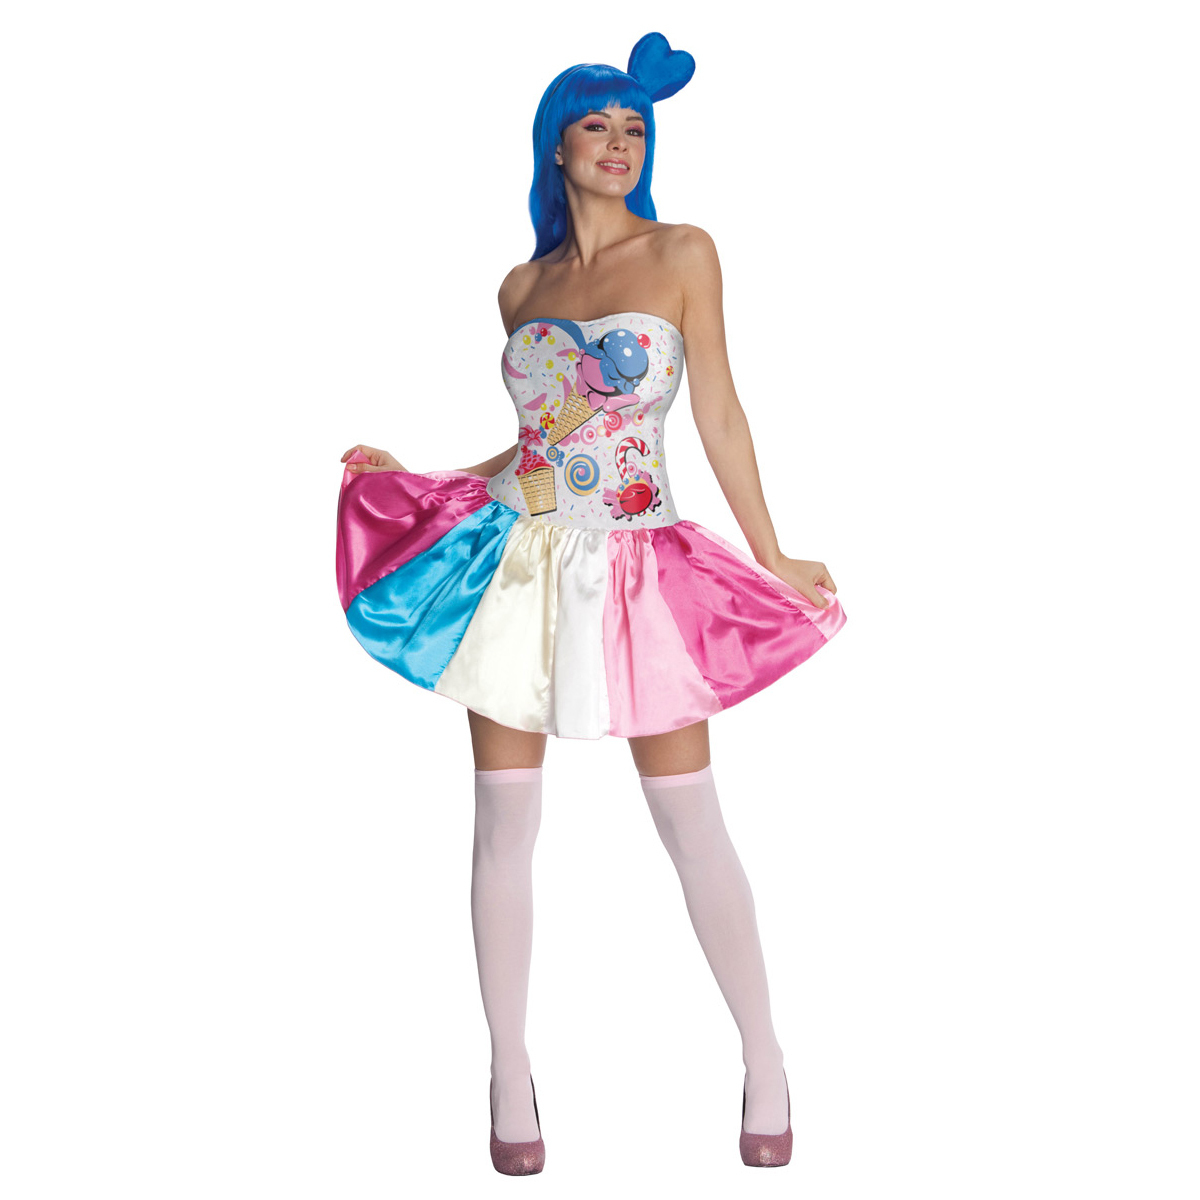 Katy Perry Candy Girl Costume